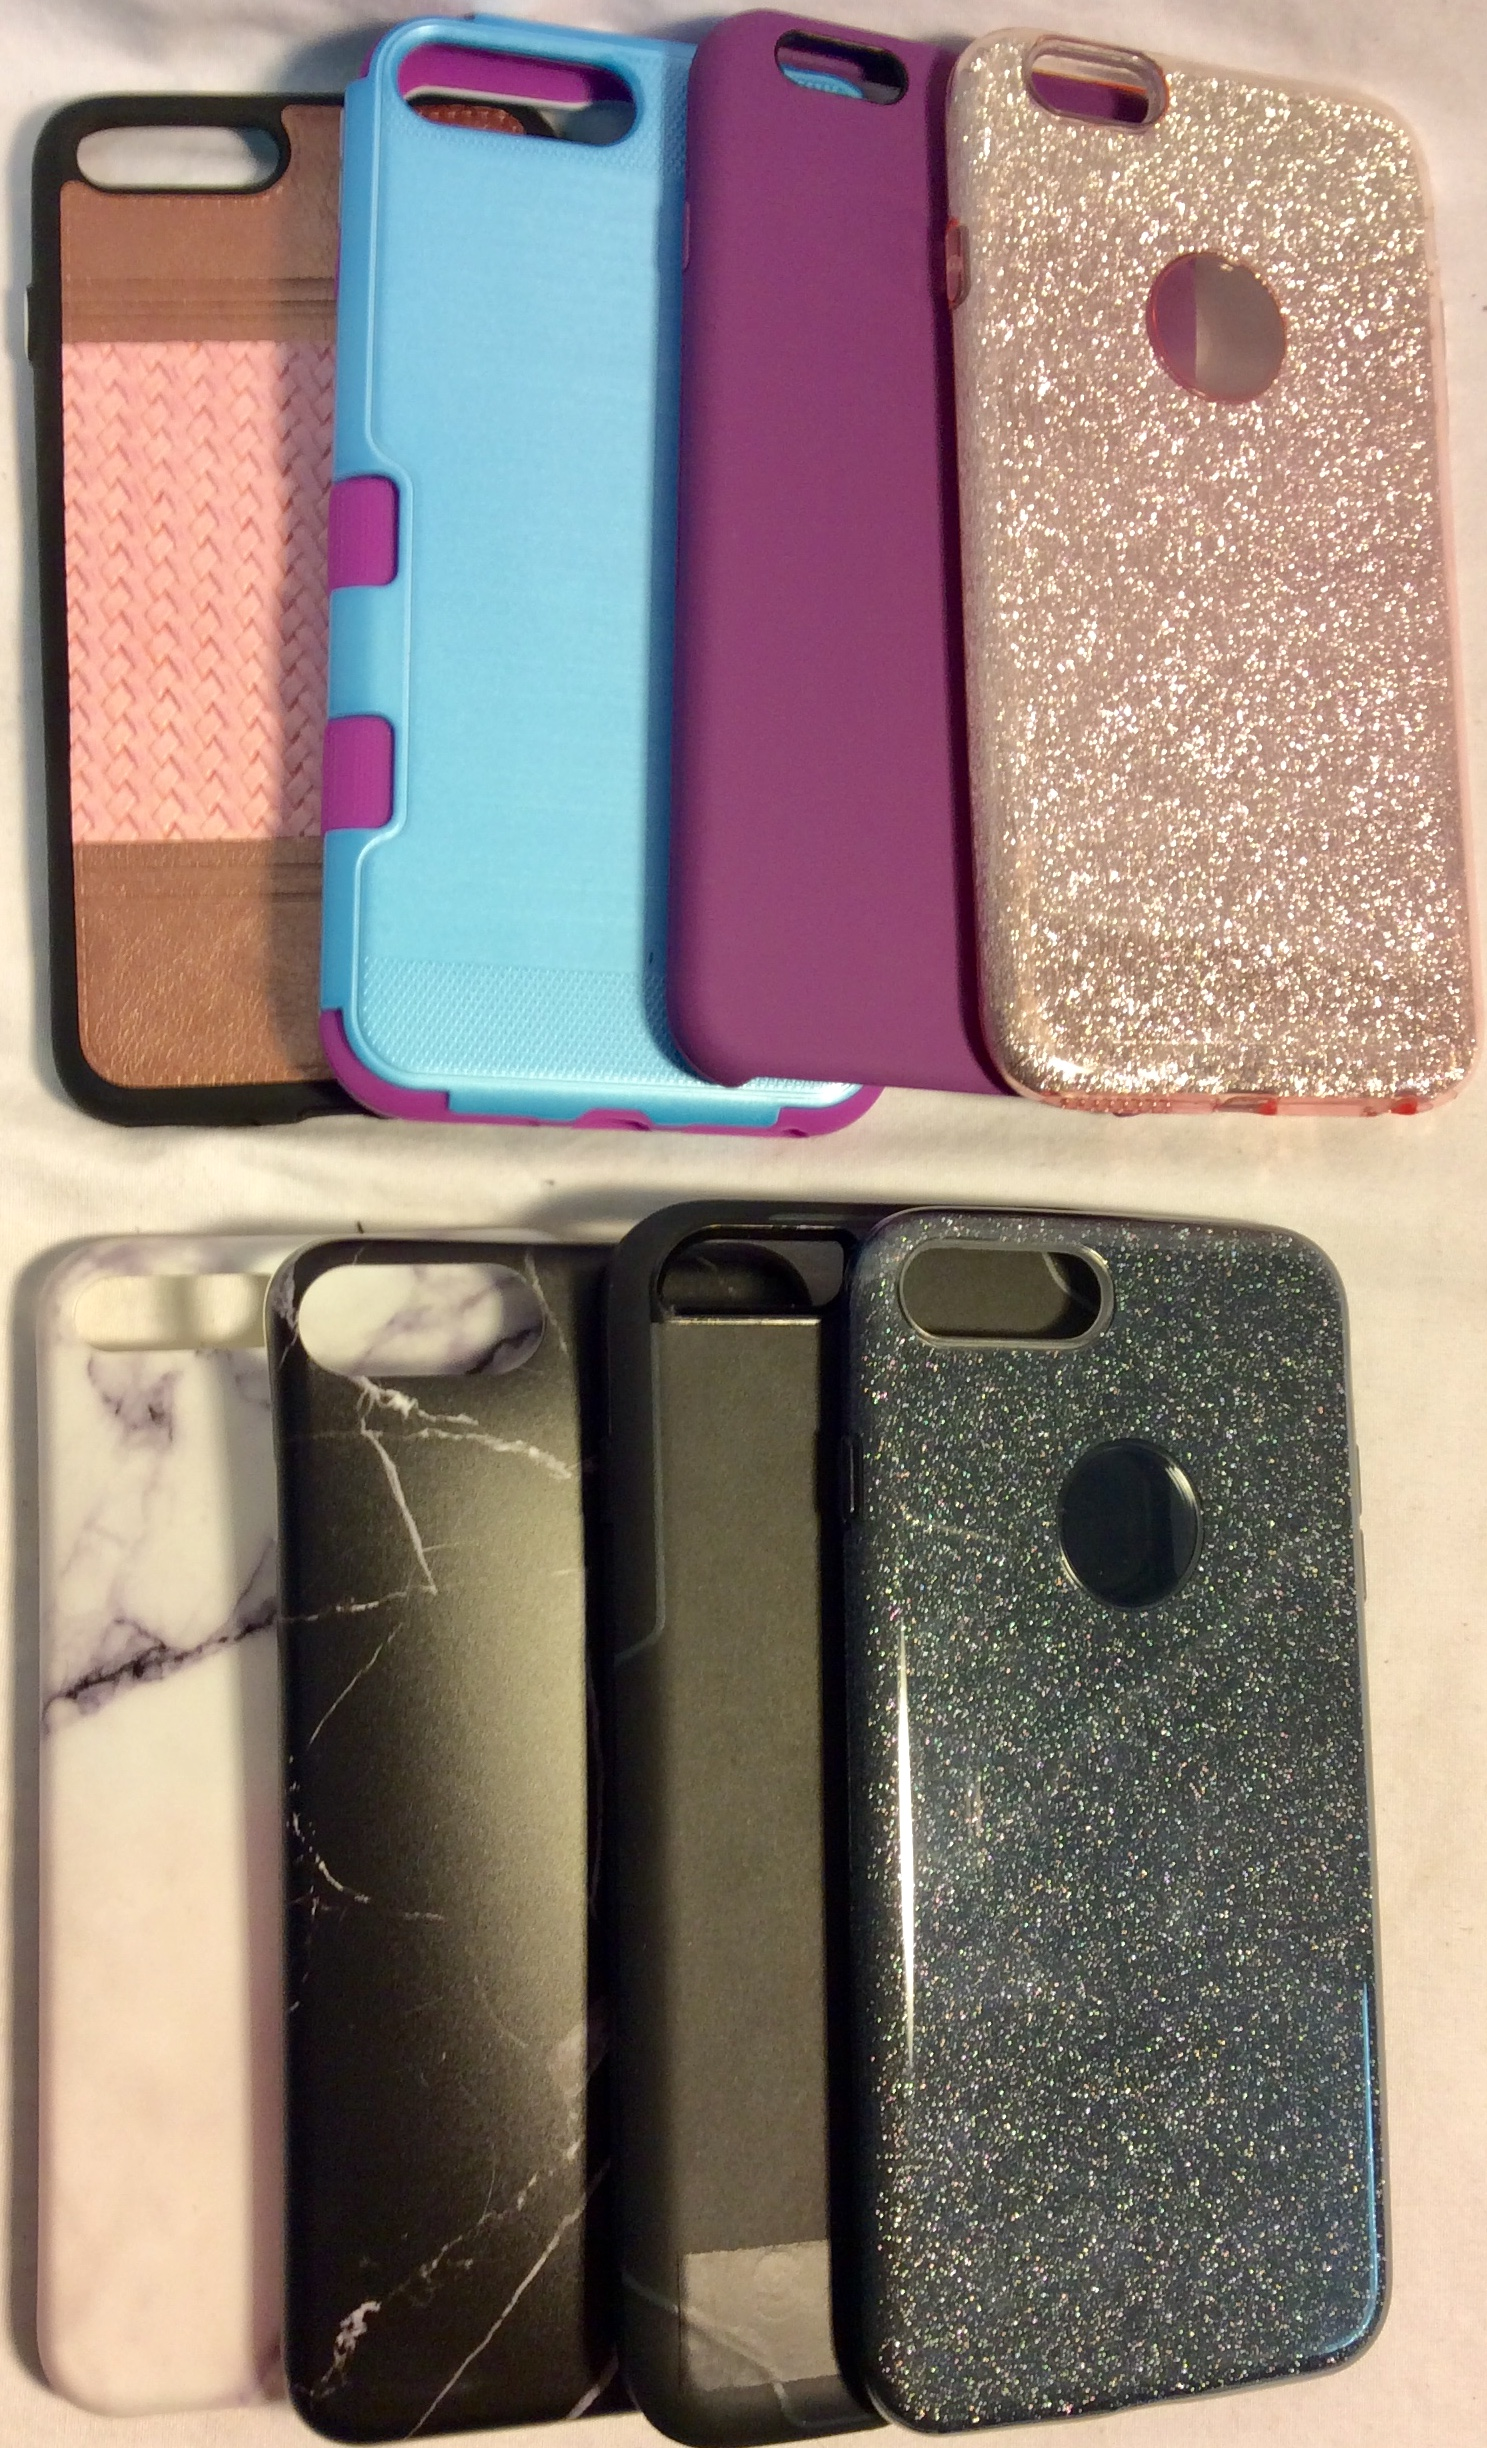 Assorted iPhone 6+ cases